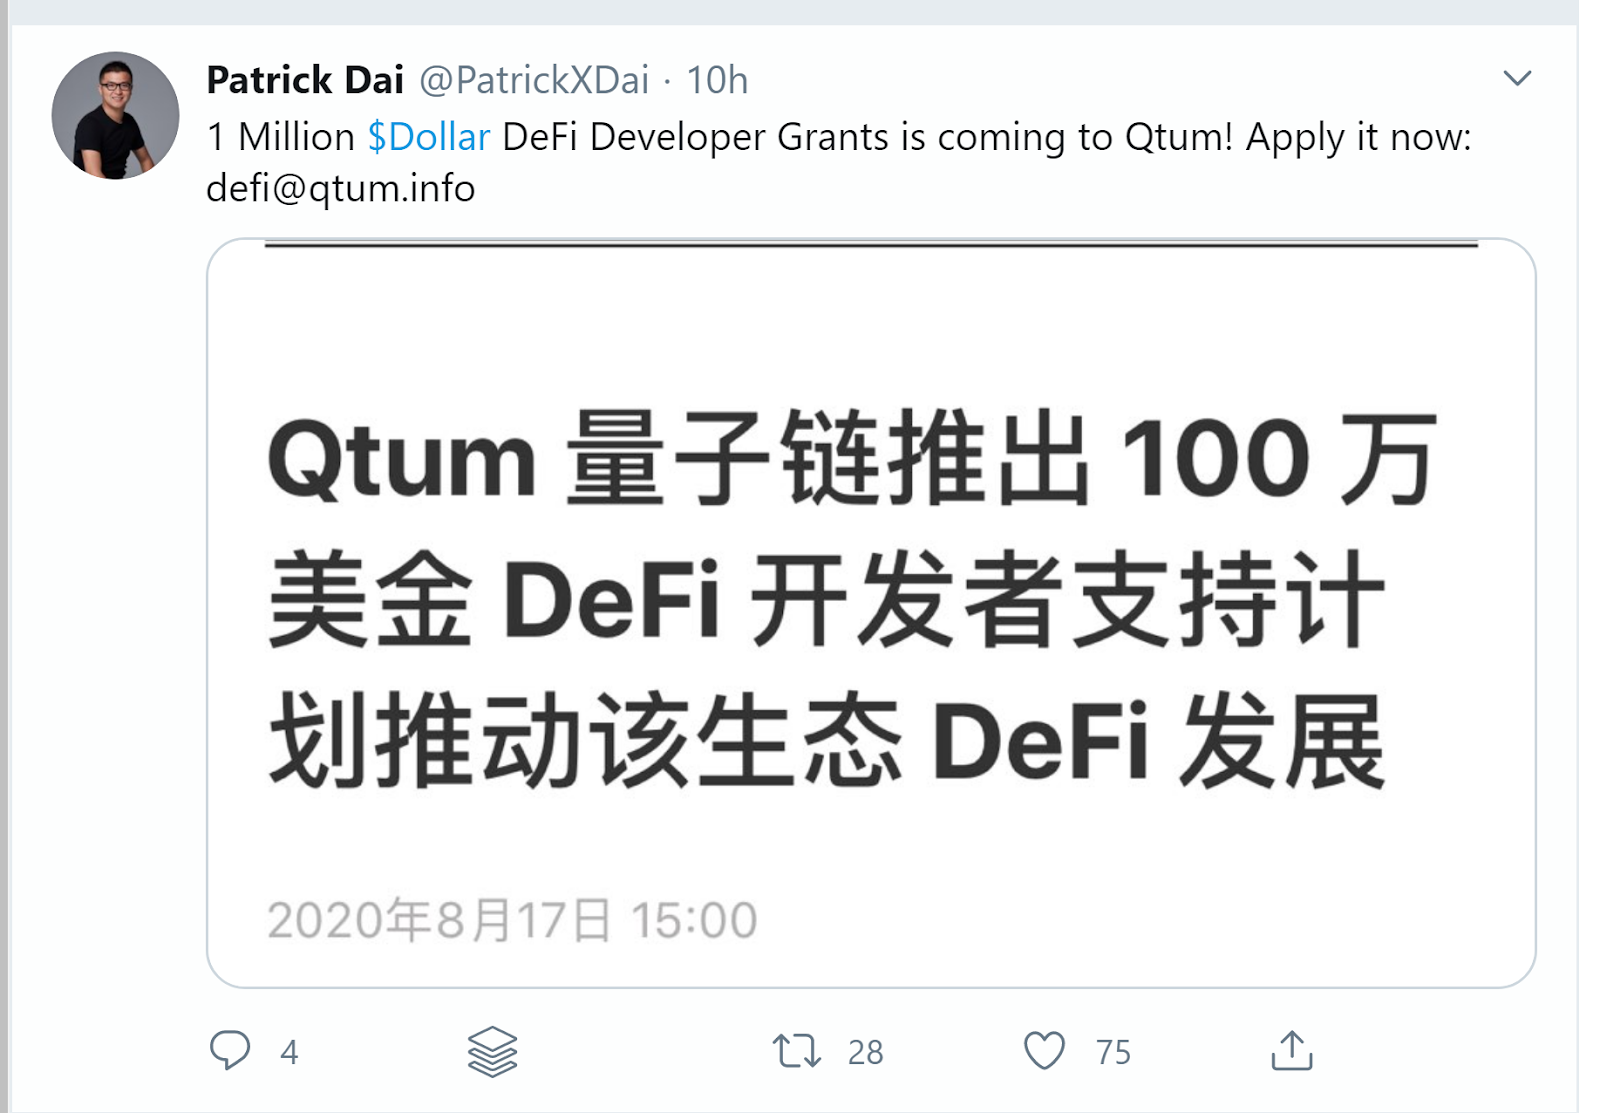 Defi Is Coming to <bold>Qtum</bold> as Ethereum Rival Launches $1M Defi Dev Fund